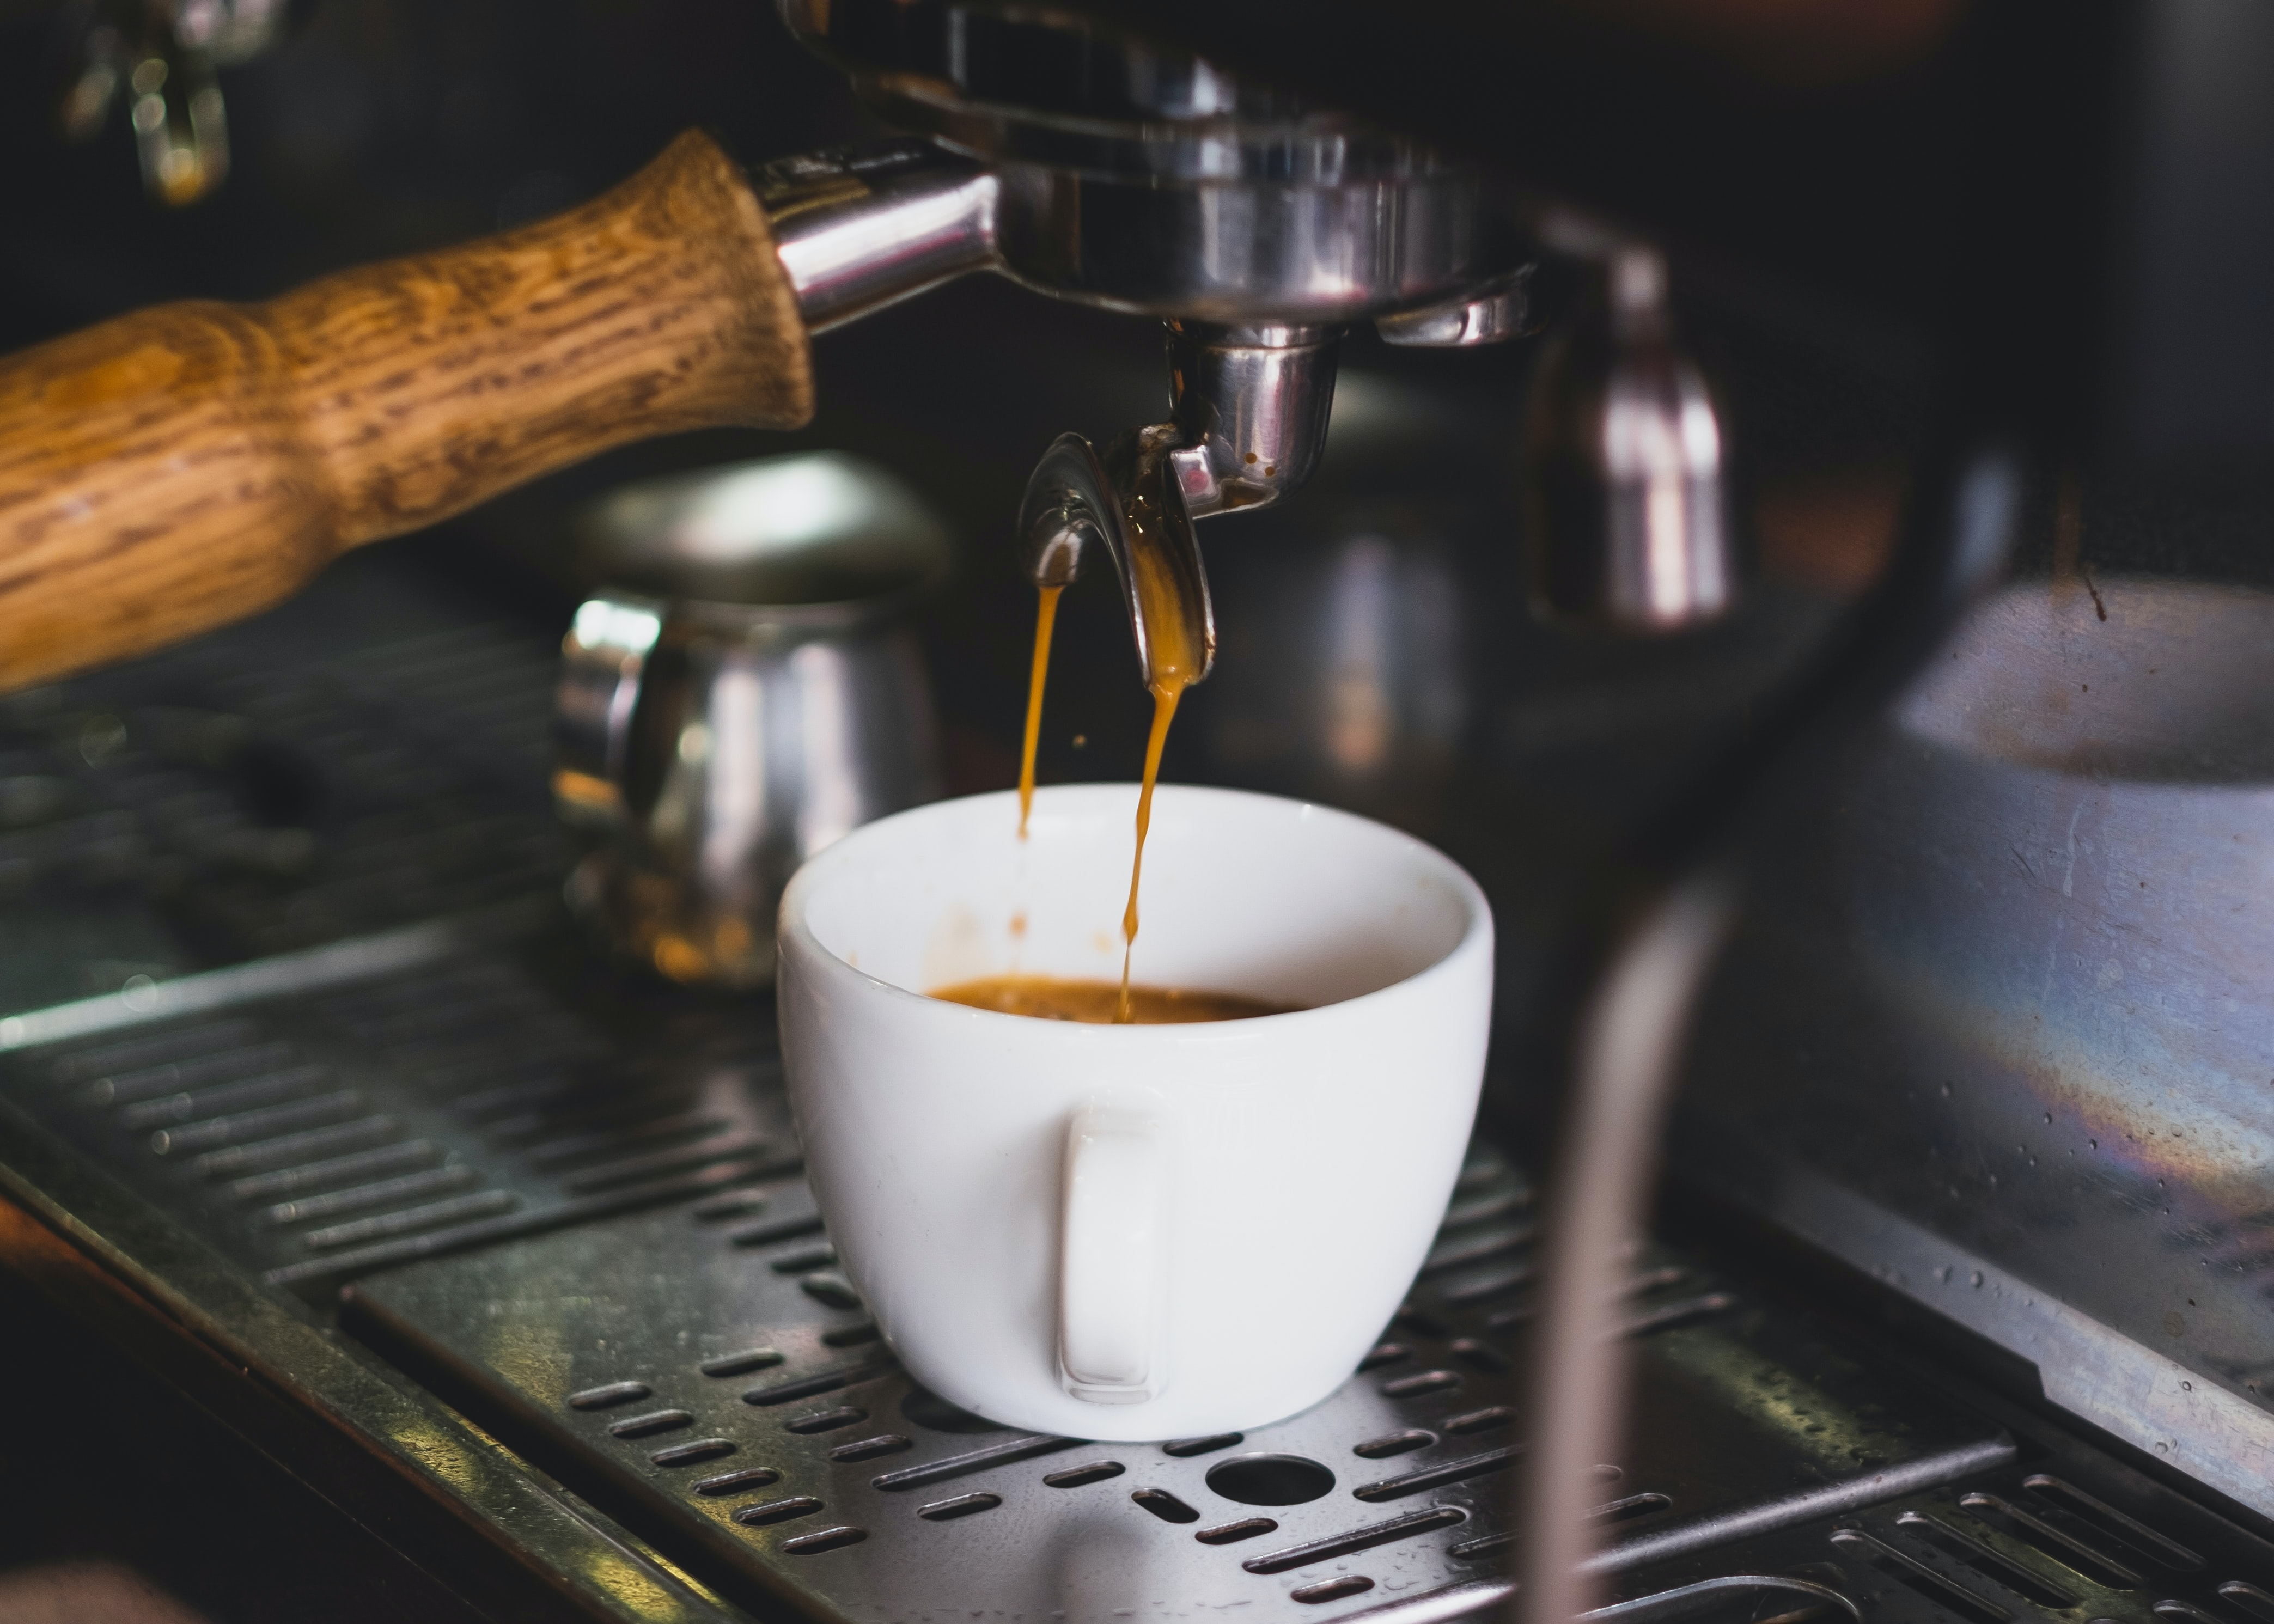 Coffee and espresso machine purchases are on the rise as consumers are forced to stay at home.